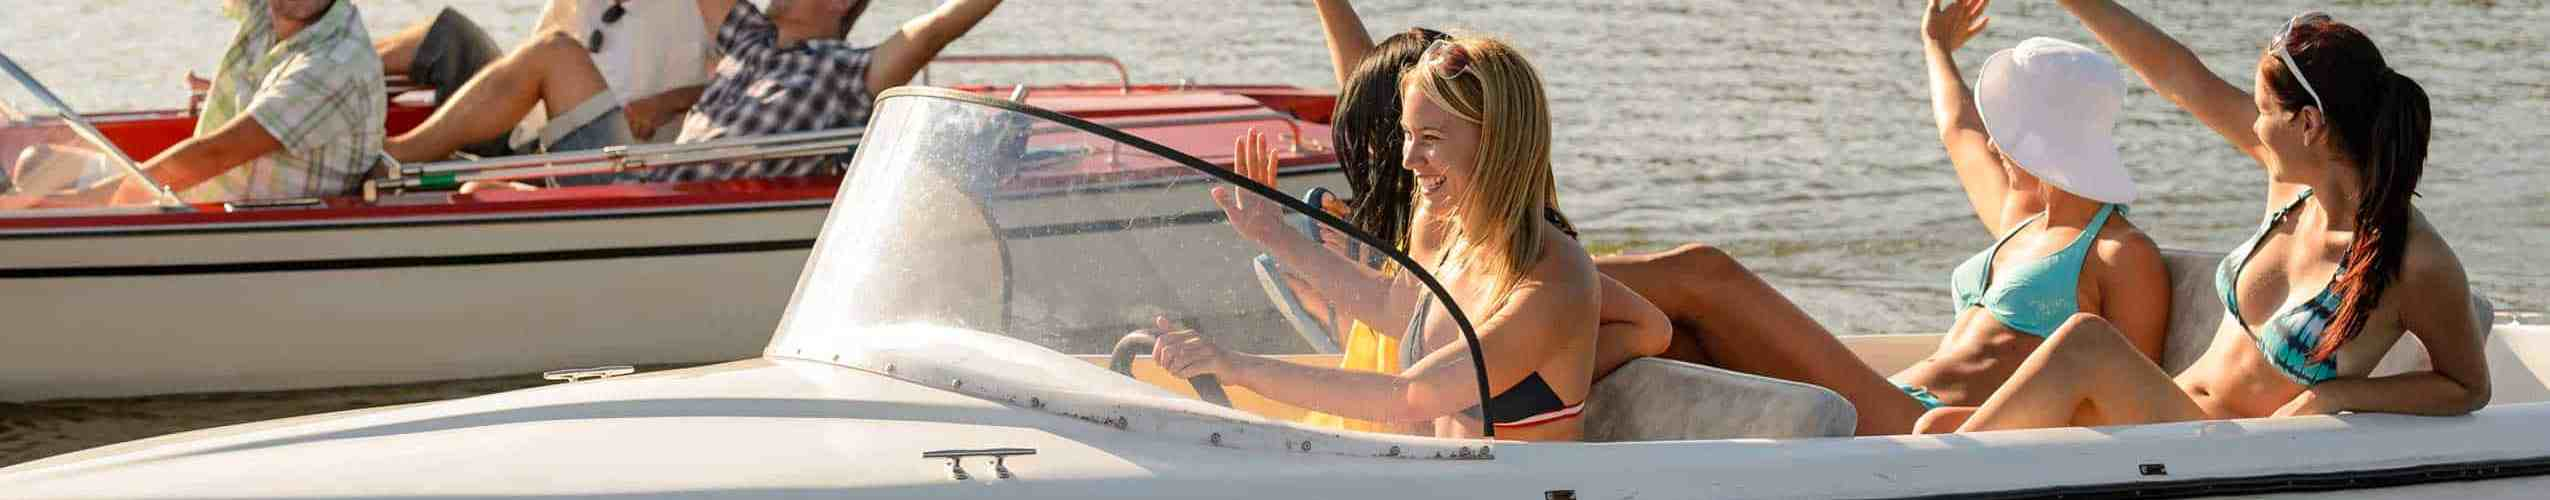 La Toretta Lake Resort And Spa Boating Fun